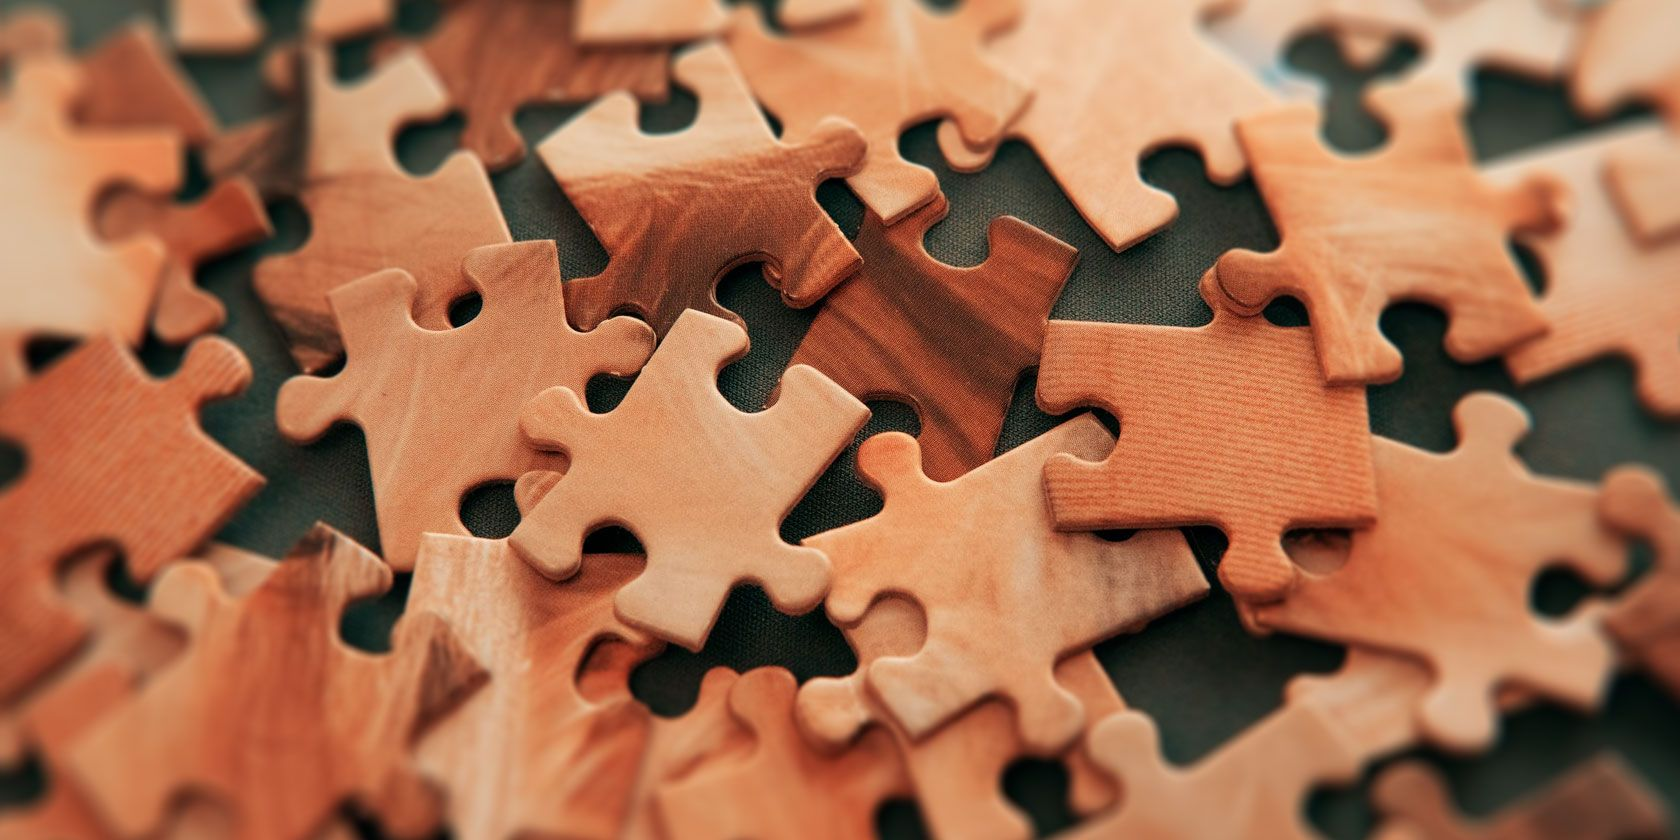 Review: The Best Jigsaw Puzzle Apps For Desktop, Tablet, And Mobile